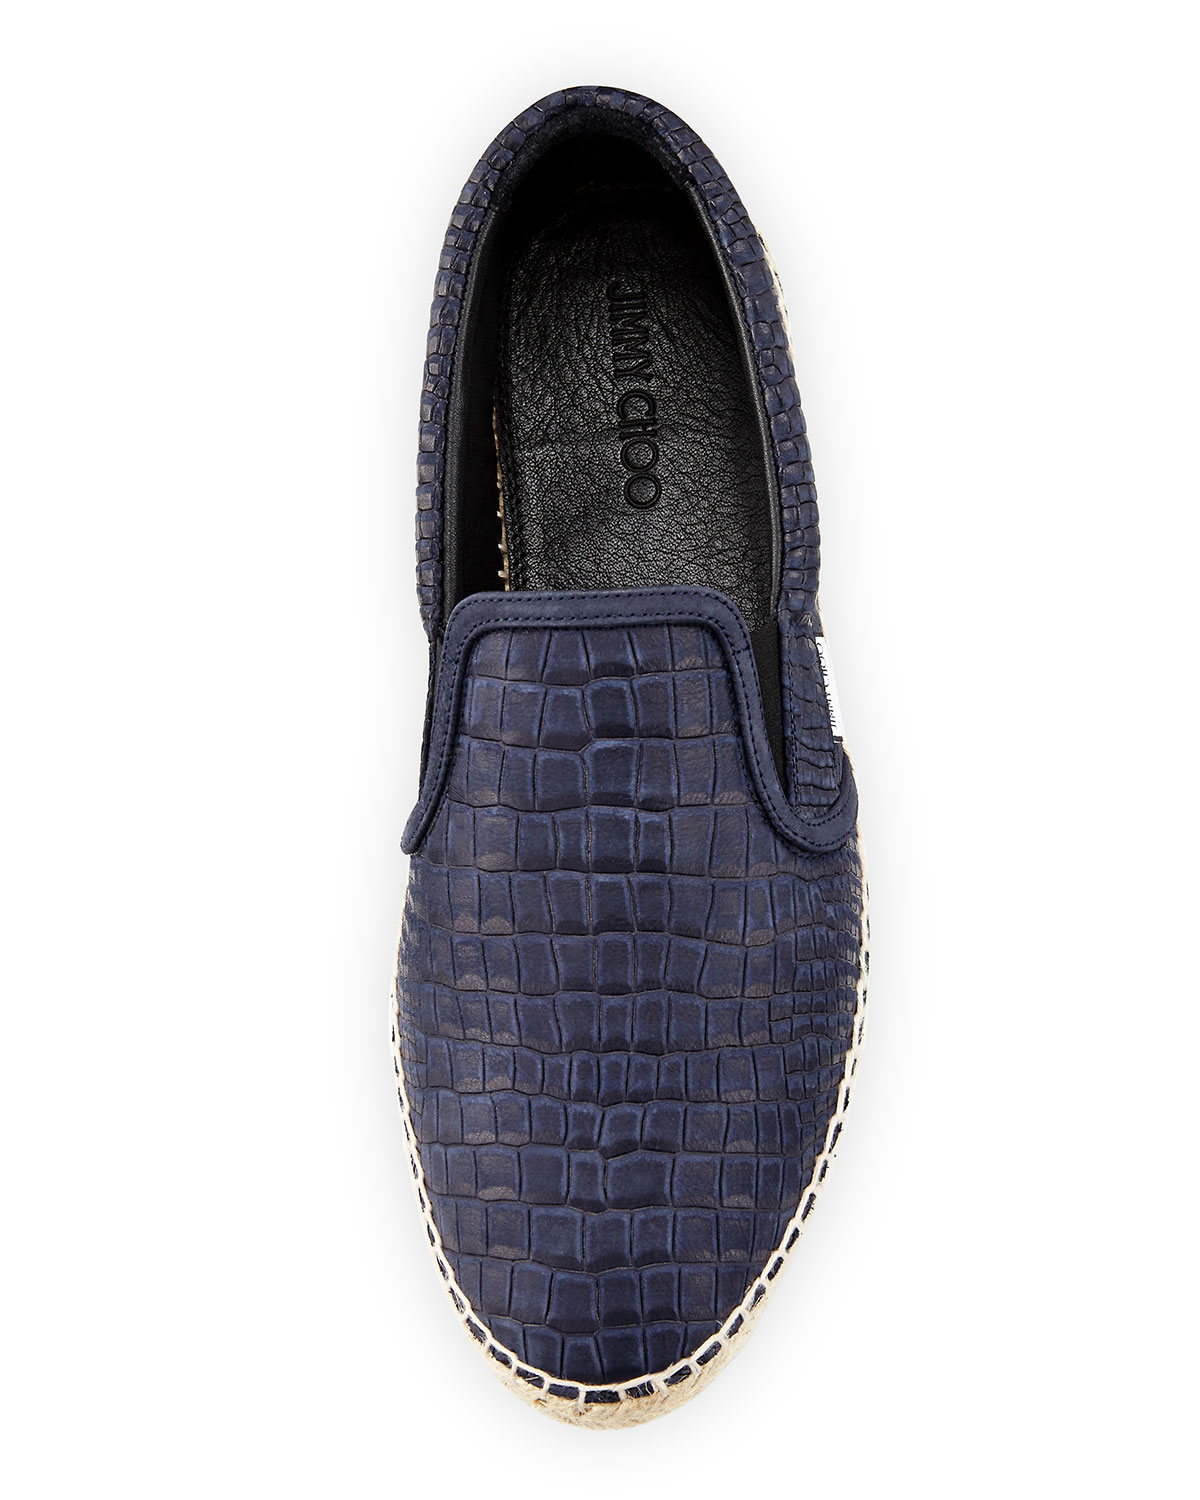 34c3ce8ccebc Jimmy Choo Vlad Men s Crocodile-Print Espadrille Slip-On Sneaker ...